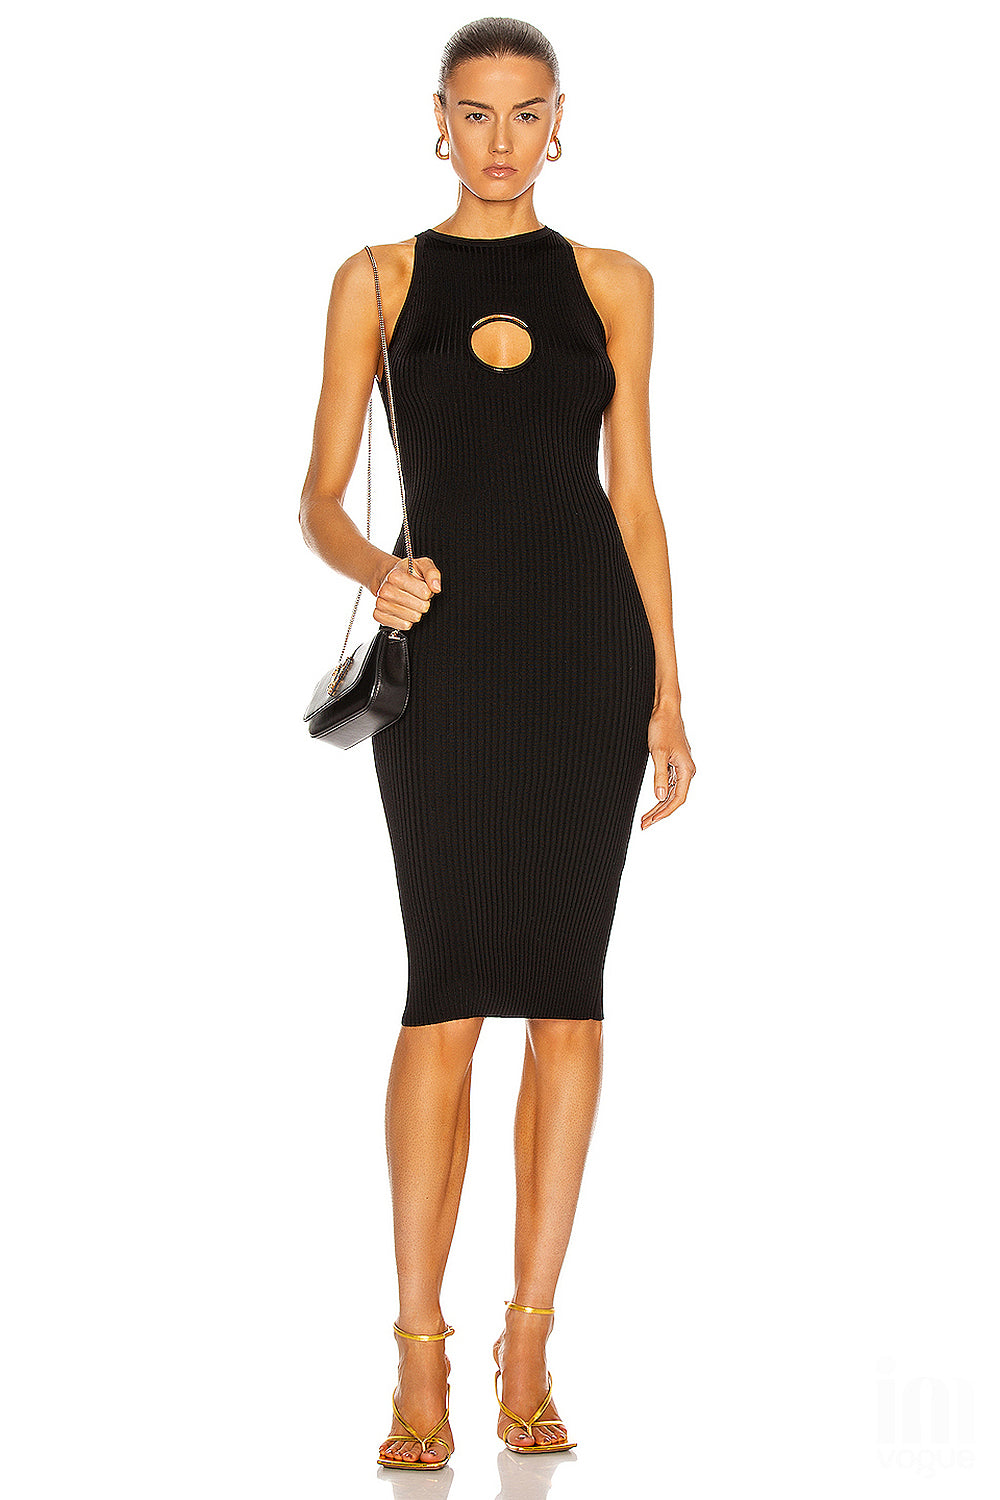 Black O-Neck Hollow Bodycon Bandage Dress